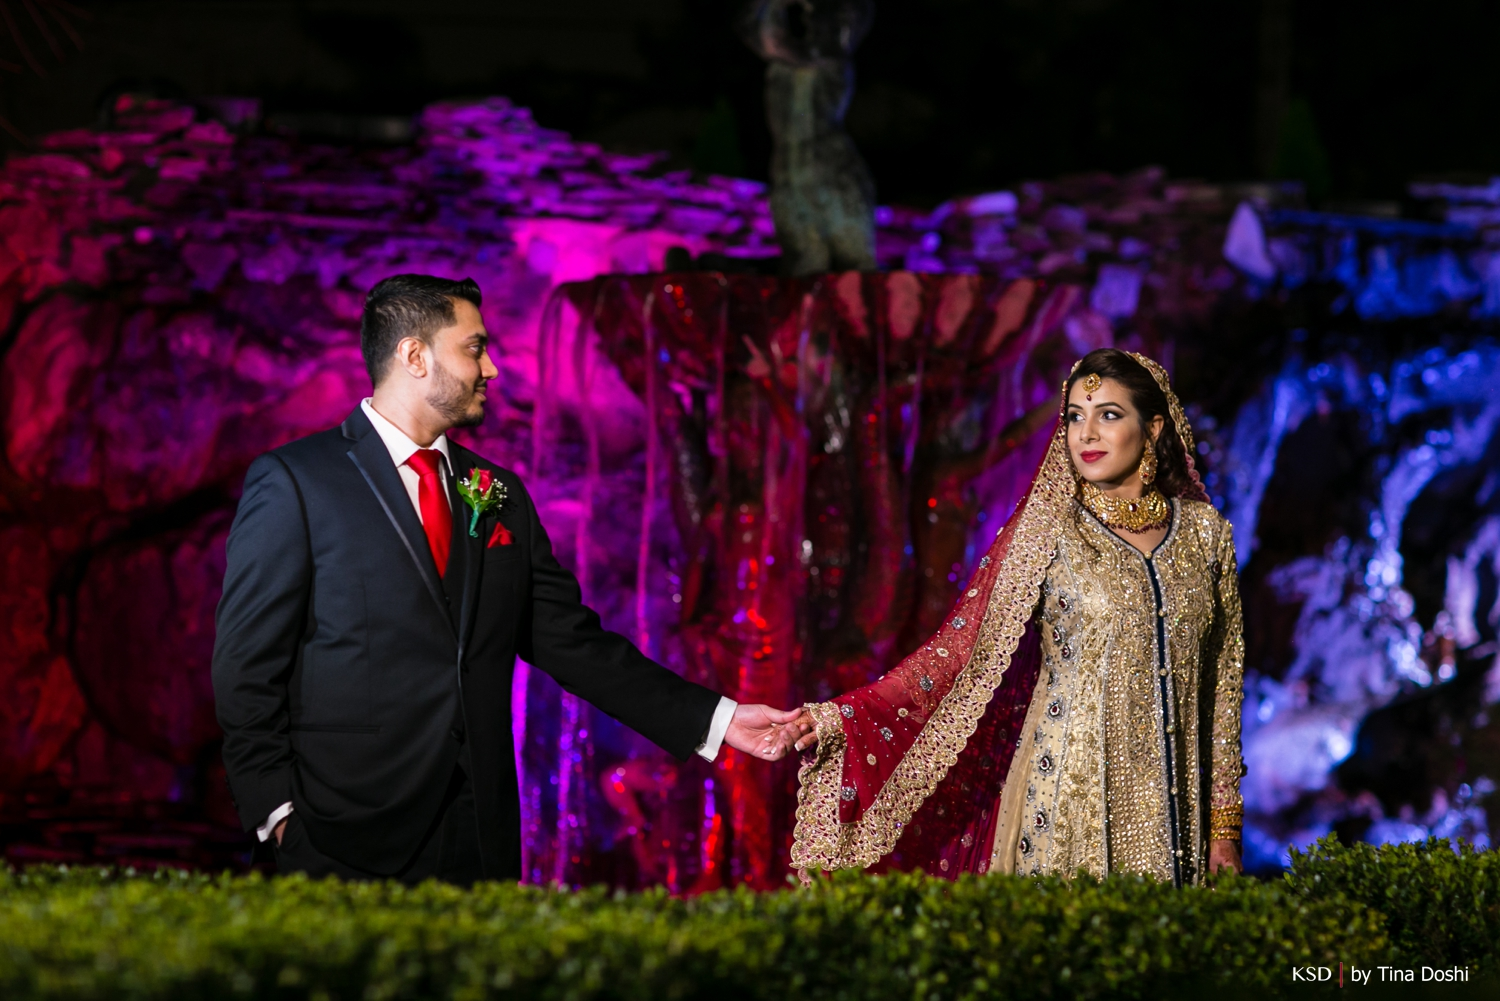 nj_south_asian_wedding_0085